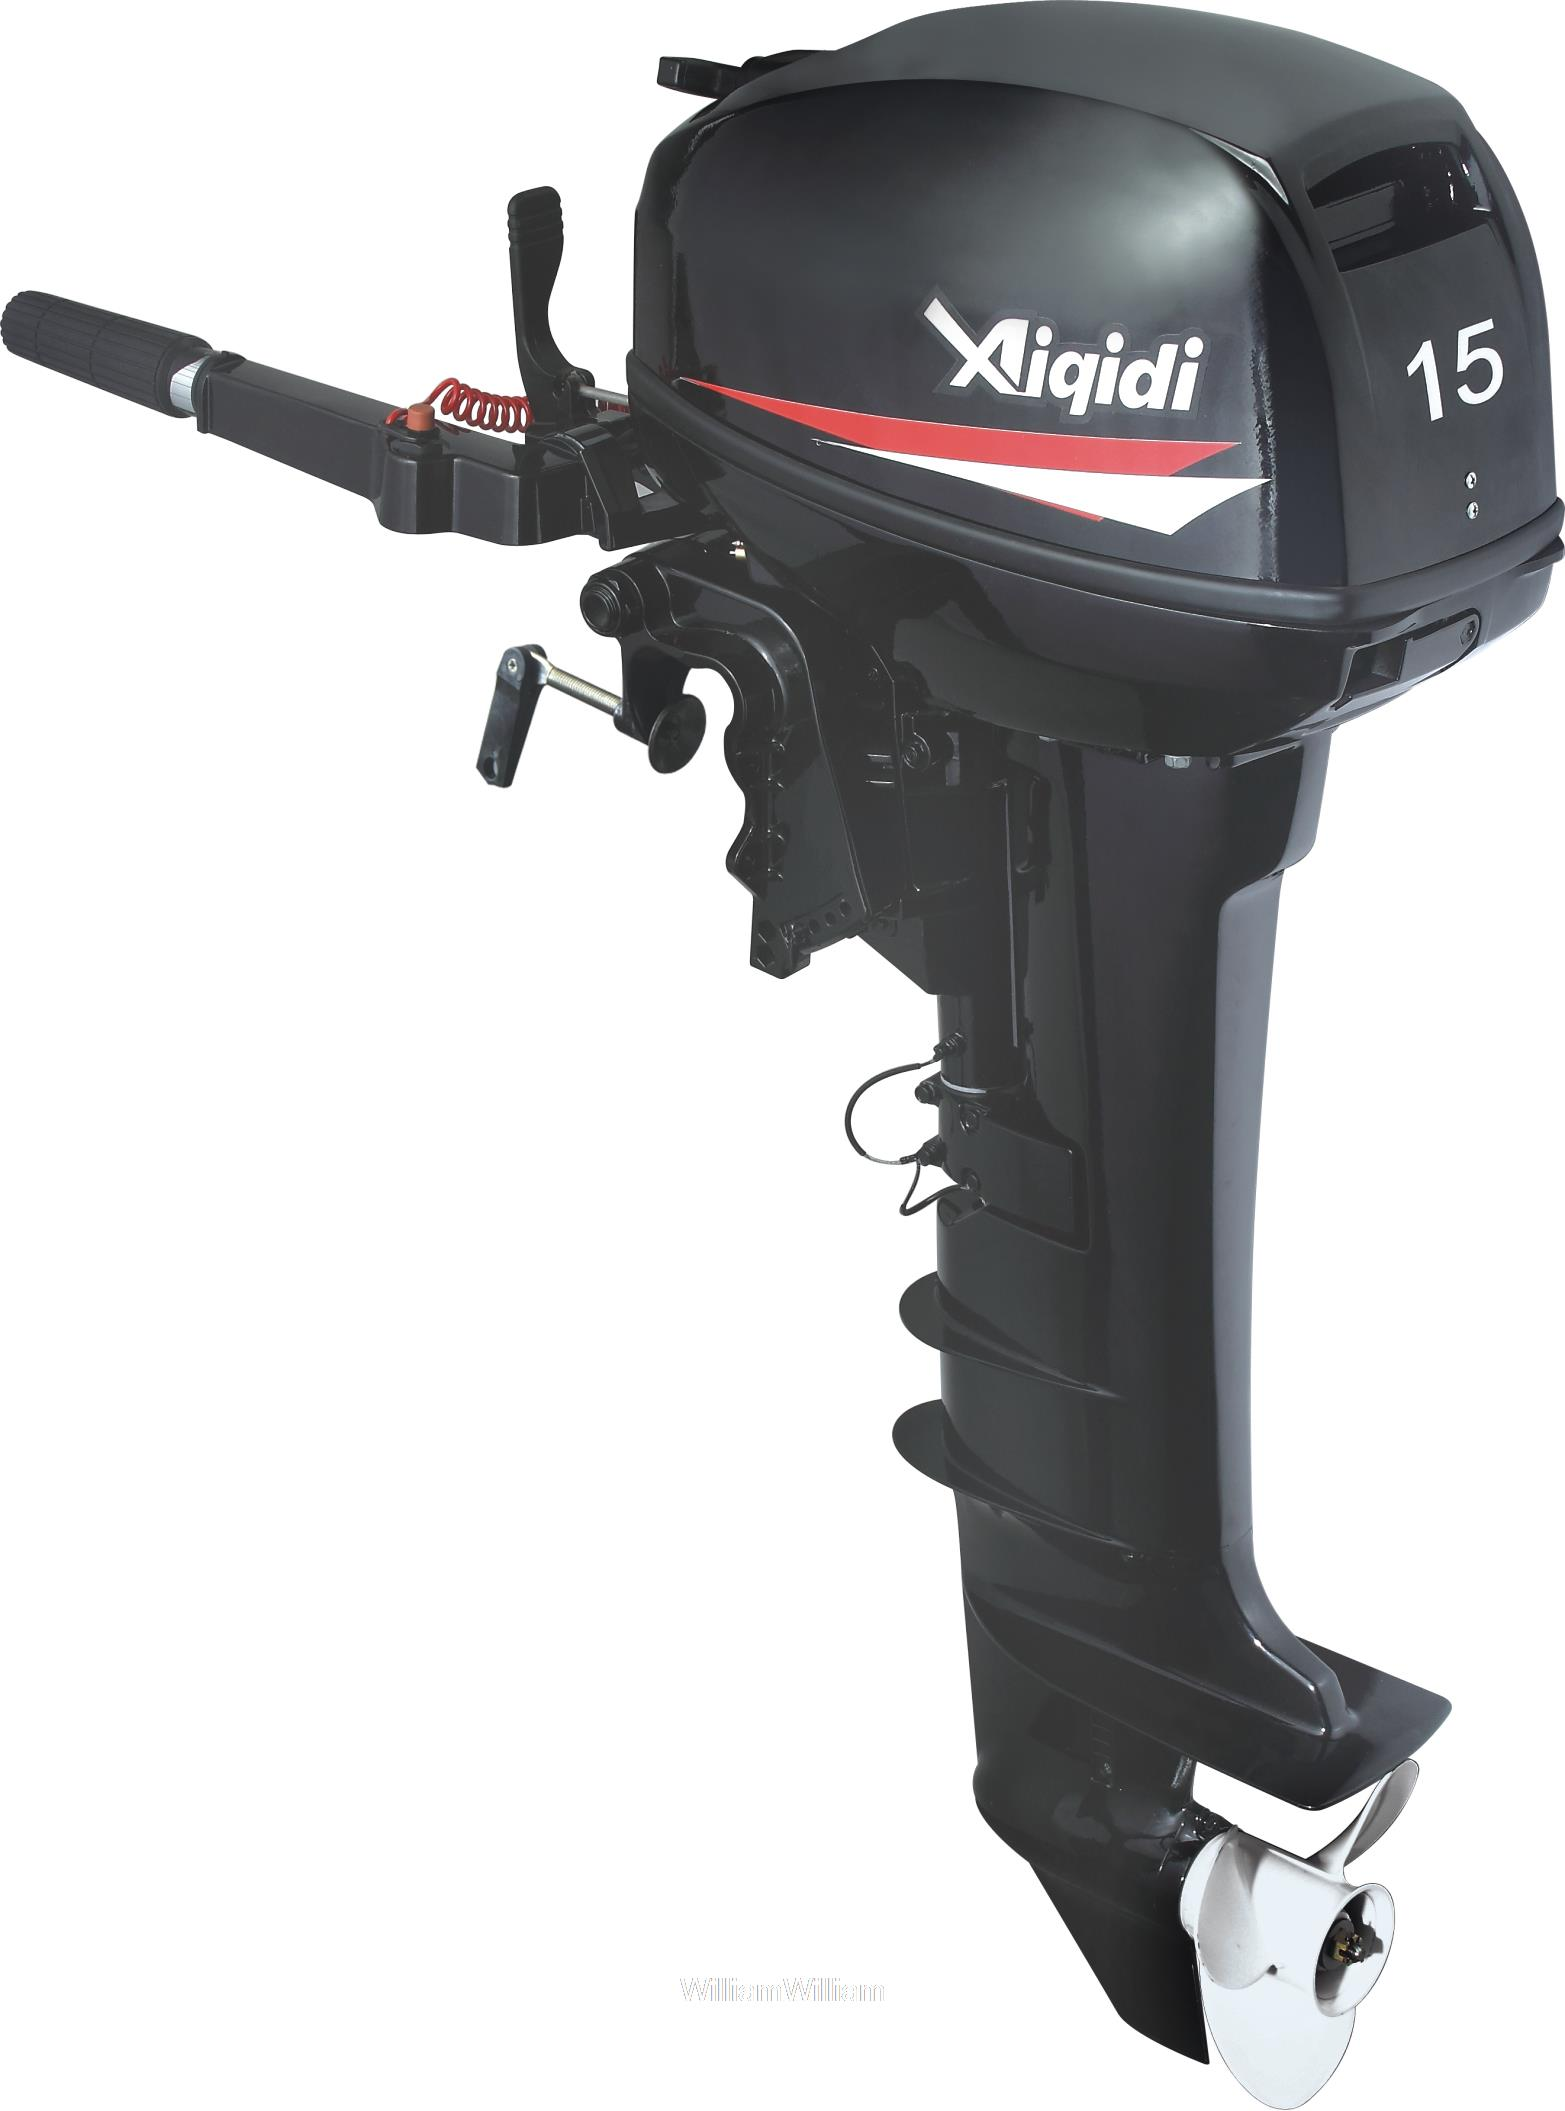 Free Shipping Anqidi 2 Stroke 15 Hp Water Cooled Outboard